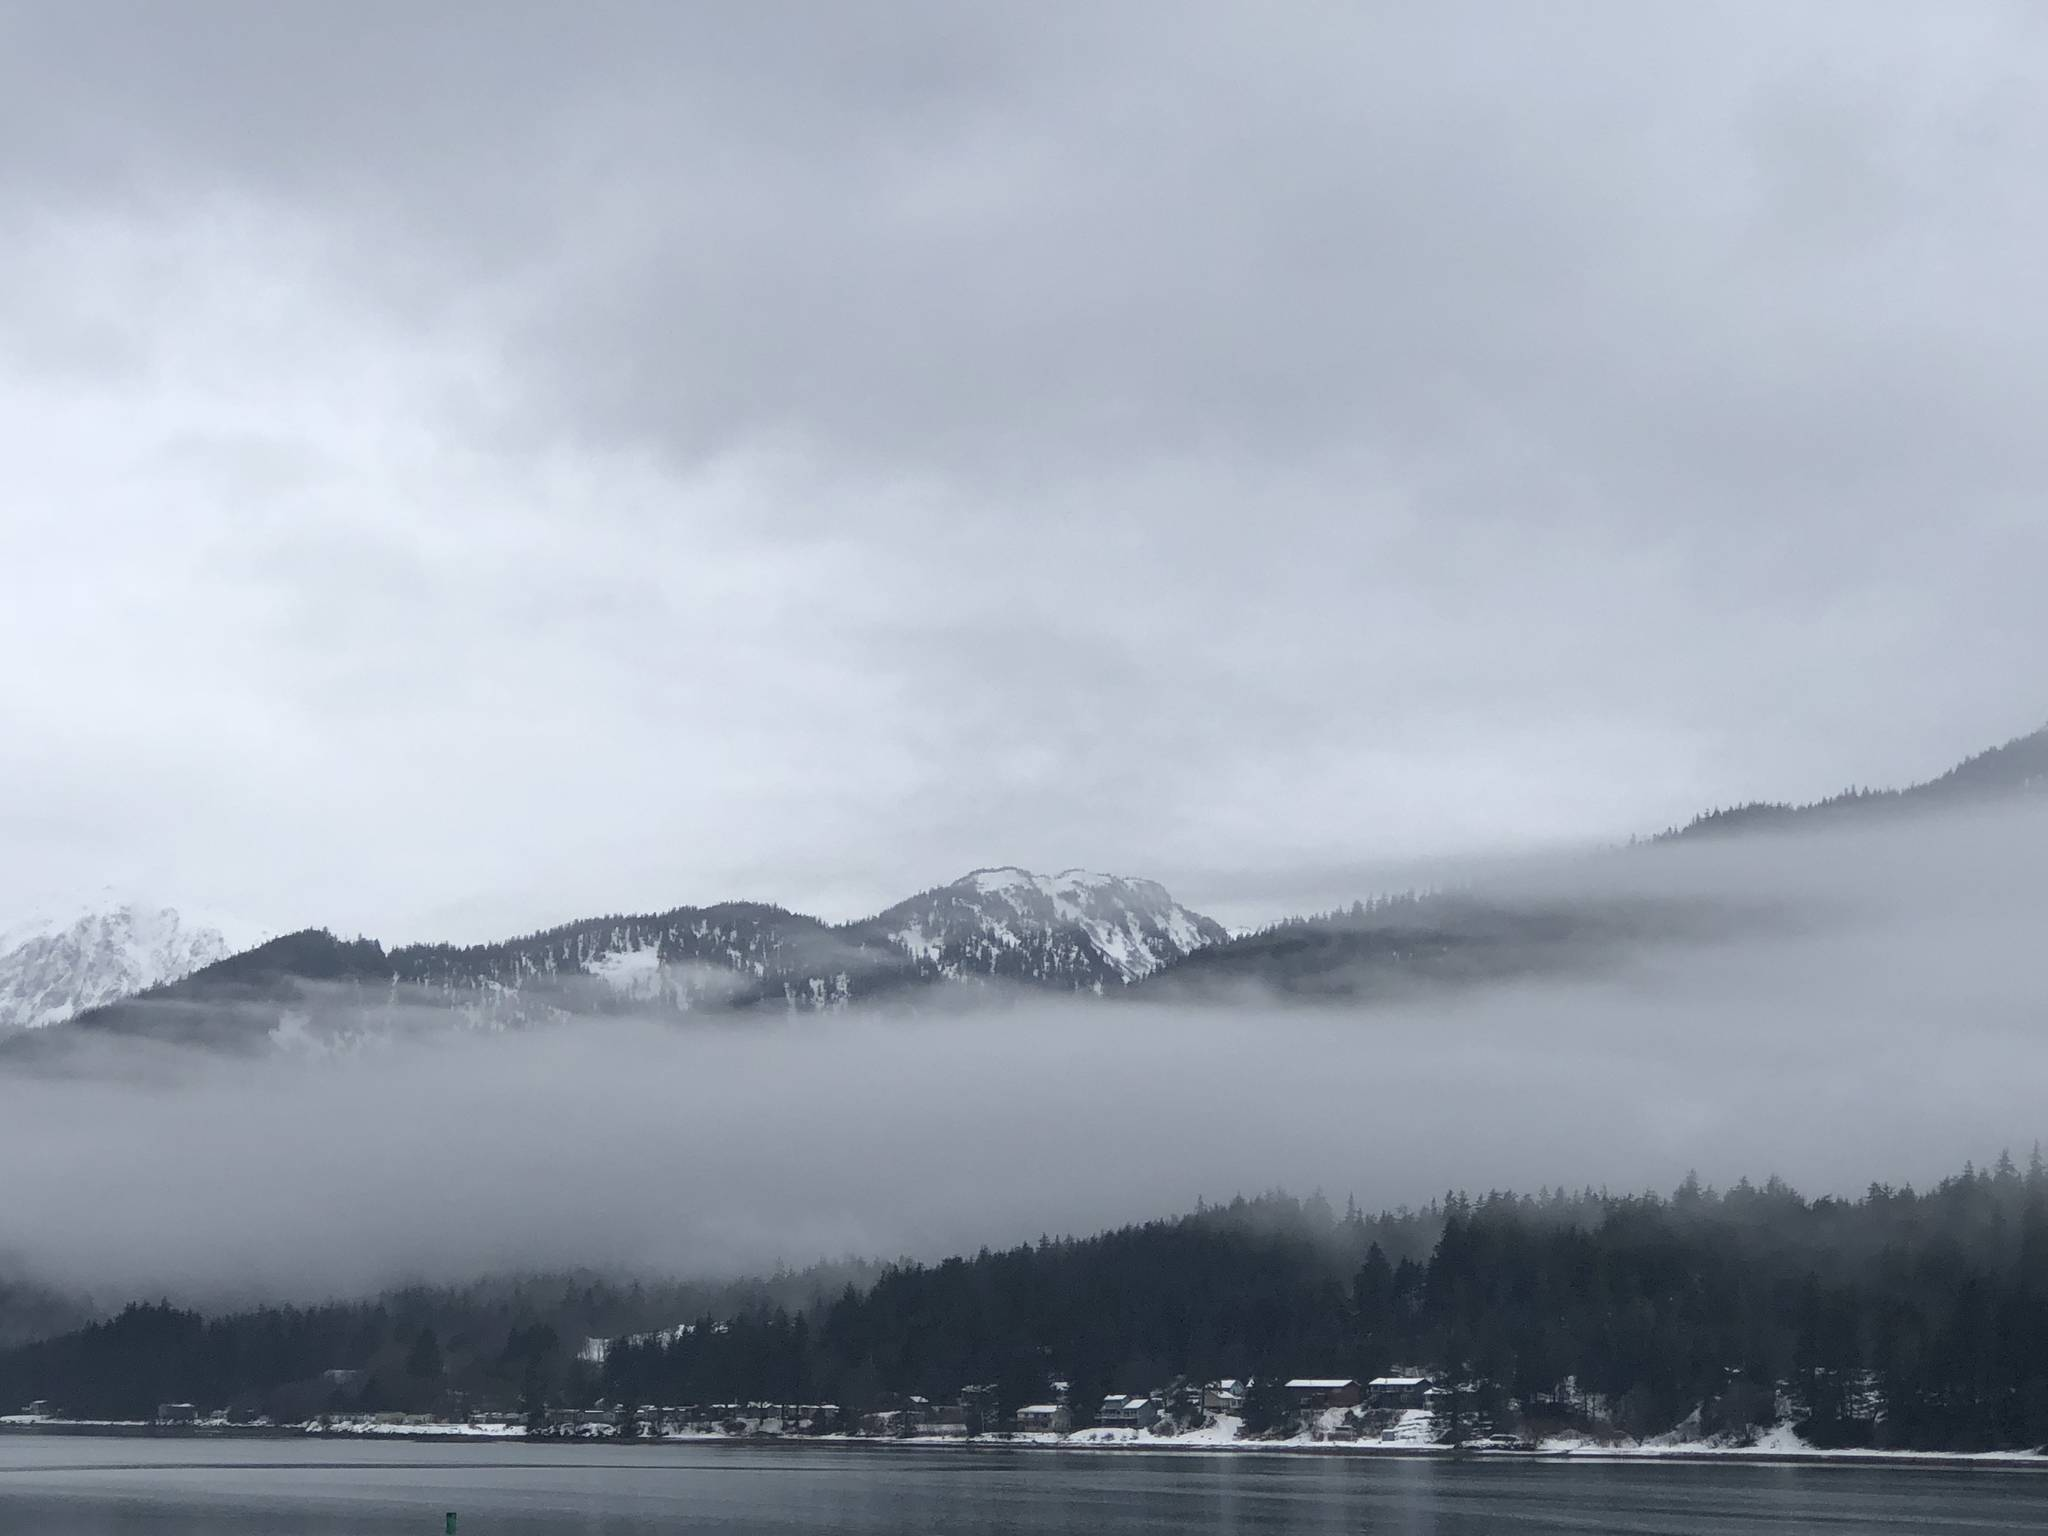 Fog is seen on Douglas Island Monday morning. Temperatures are expected to reach 50 degrees Tuesday for the first time this year and rapidly erode Juneau's remaining sea-level snow. (Juneau Empire)  Fog is seen on Douglas Island Monday morning. Temperatures are expected to reach 50 degrees Tuesday for the first time this year and rapidly erode Juneau's remaining sea-level snow. (Juneau Empire)